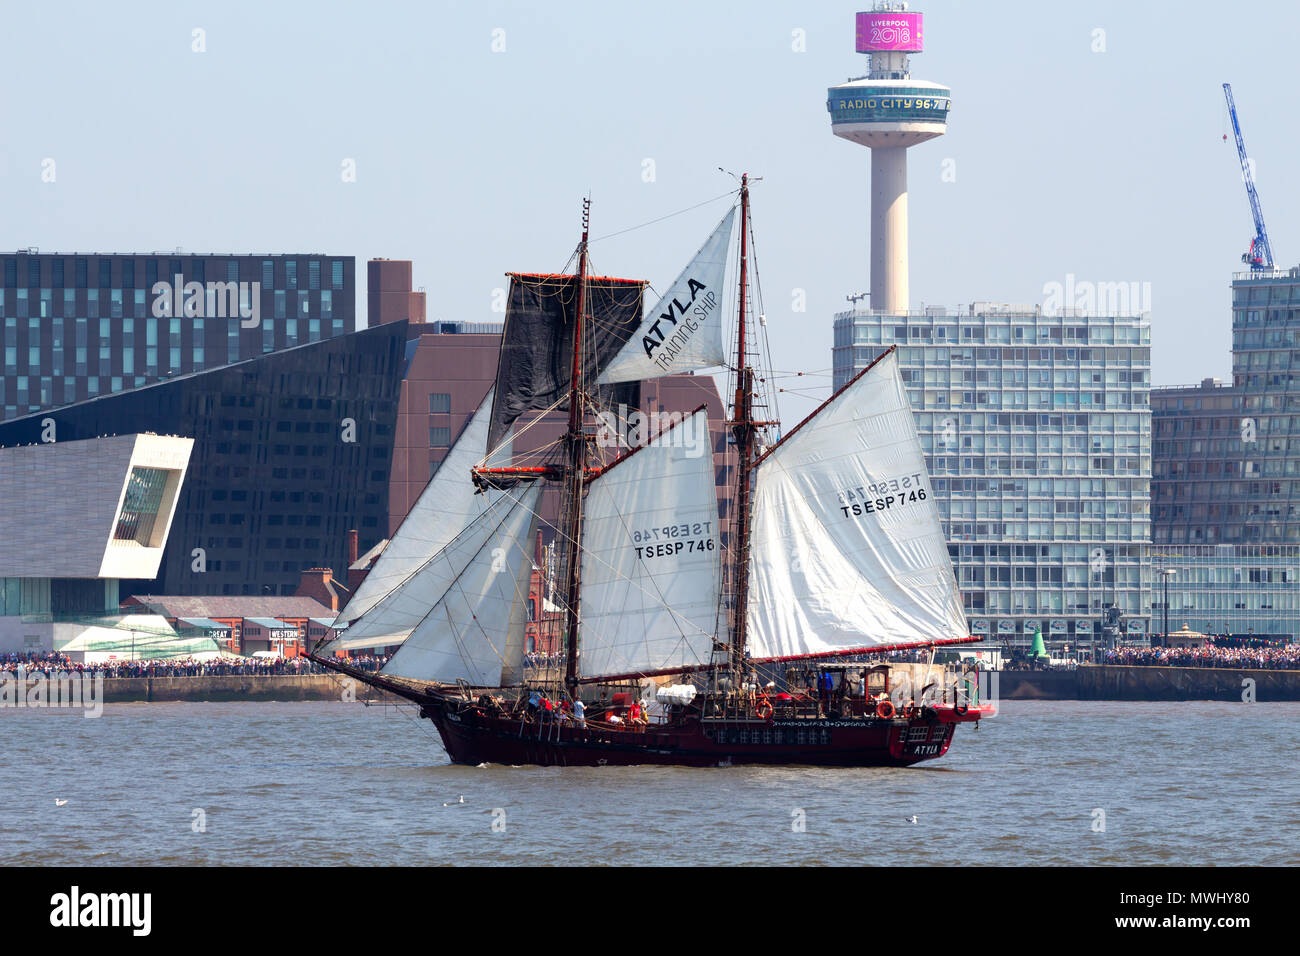 Tall ship Atyla on the River Mersey during the parade of sail during the Tall Ships Festival in Liverpool May 2018 - Stock Image